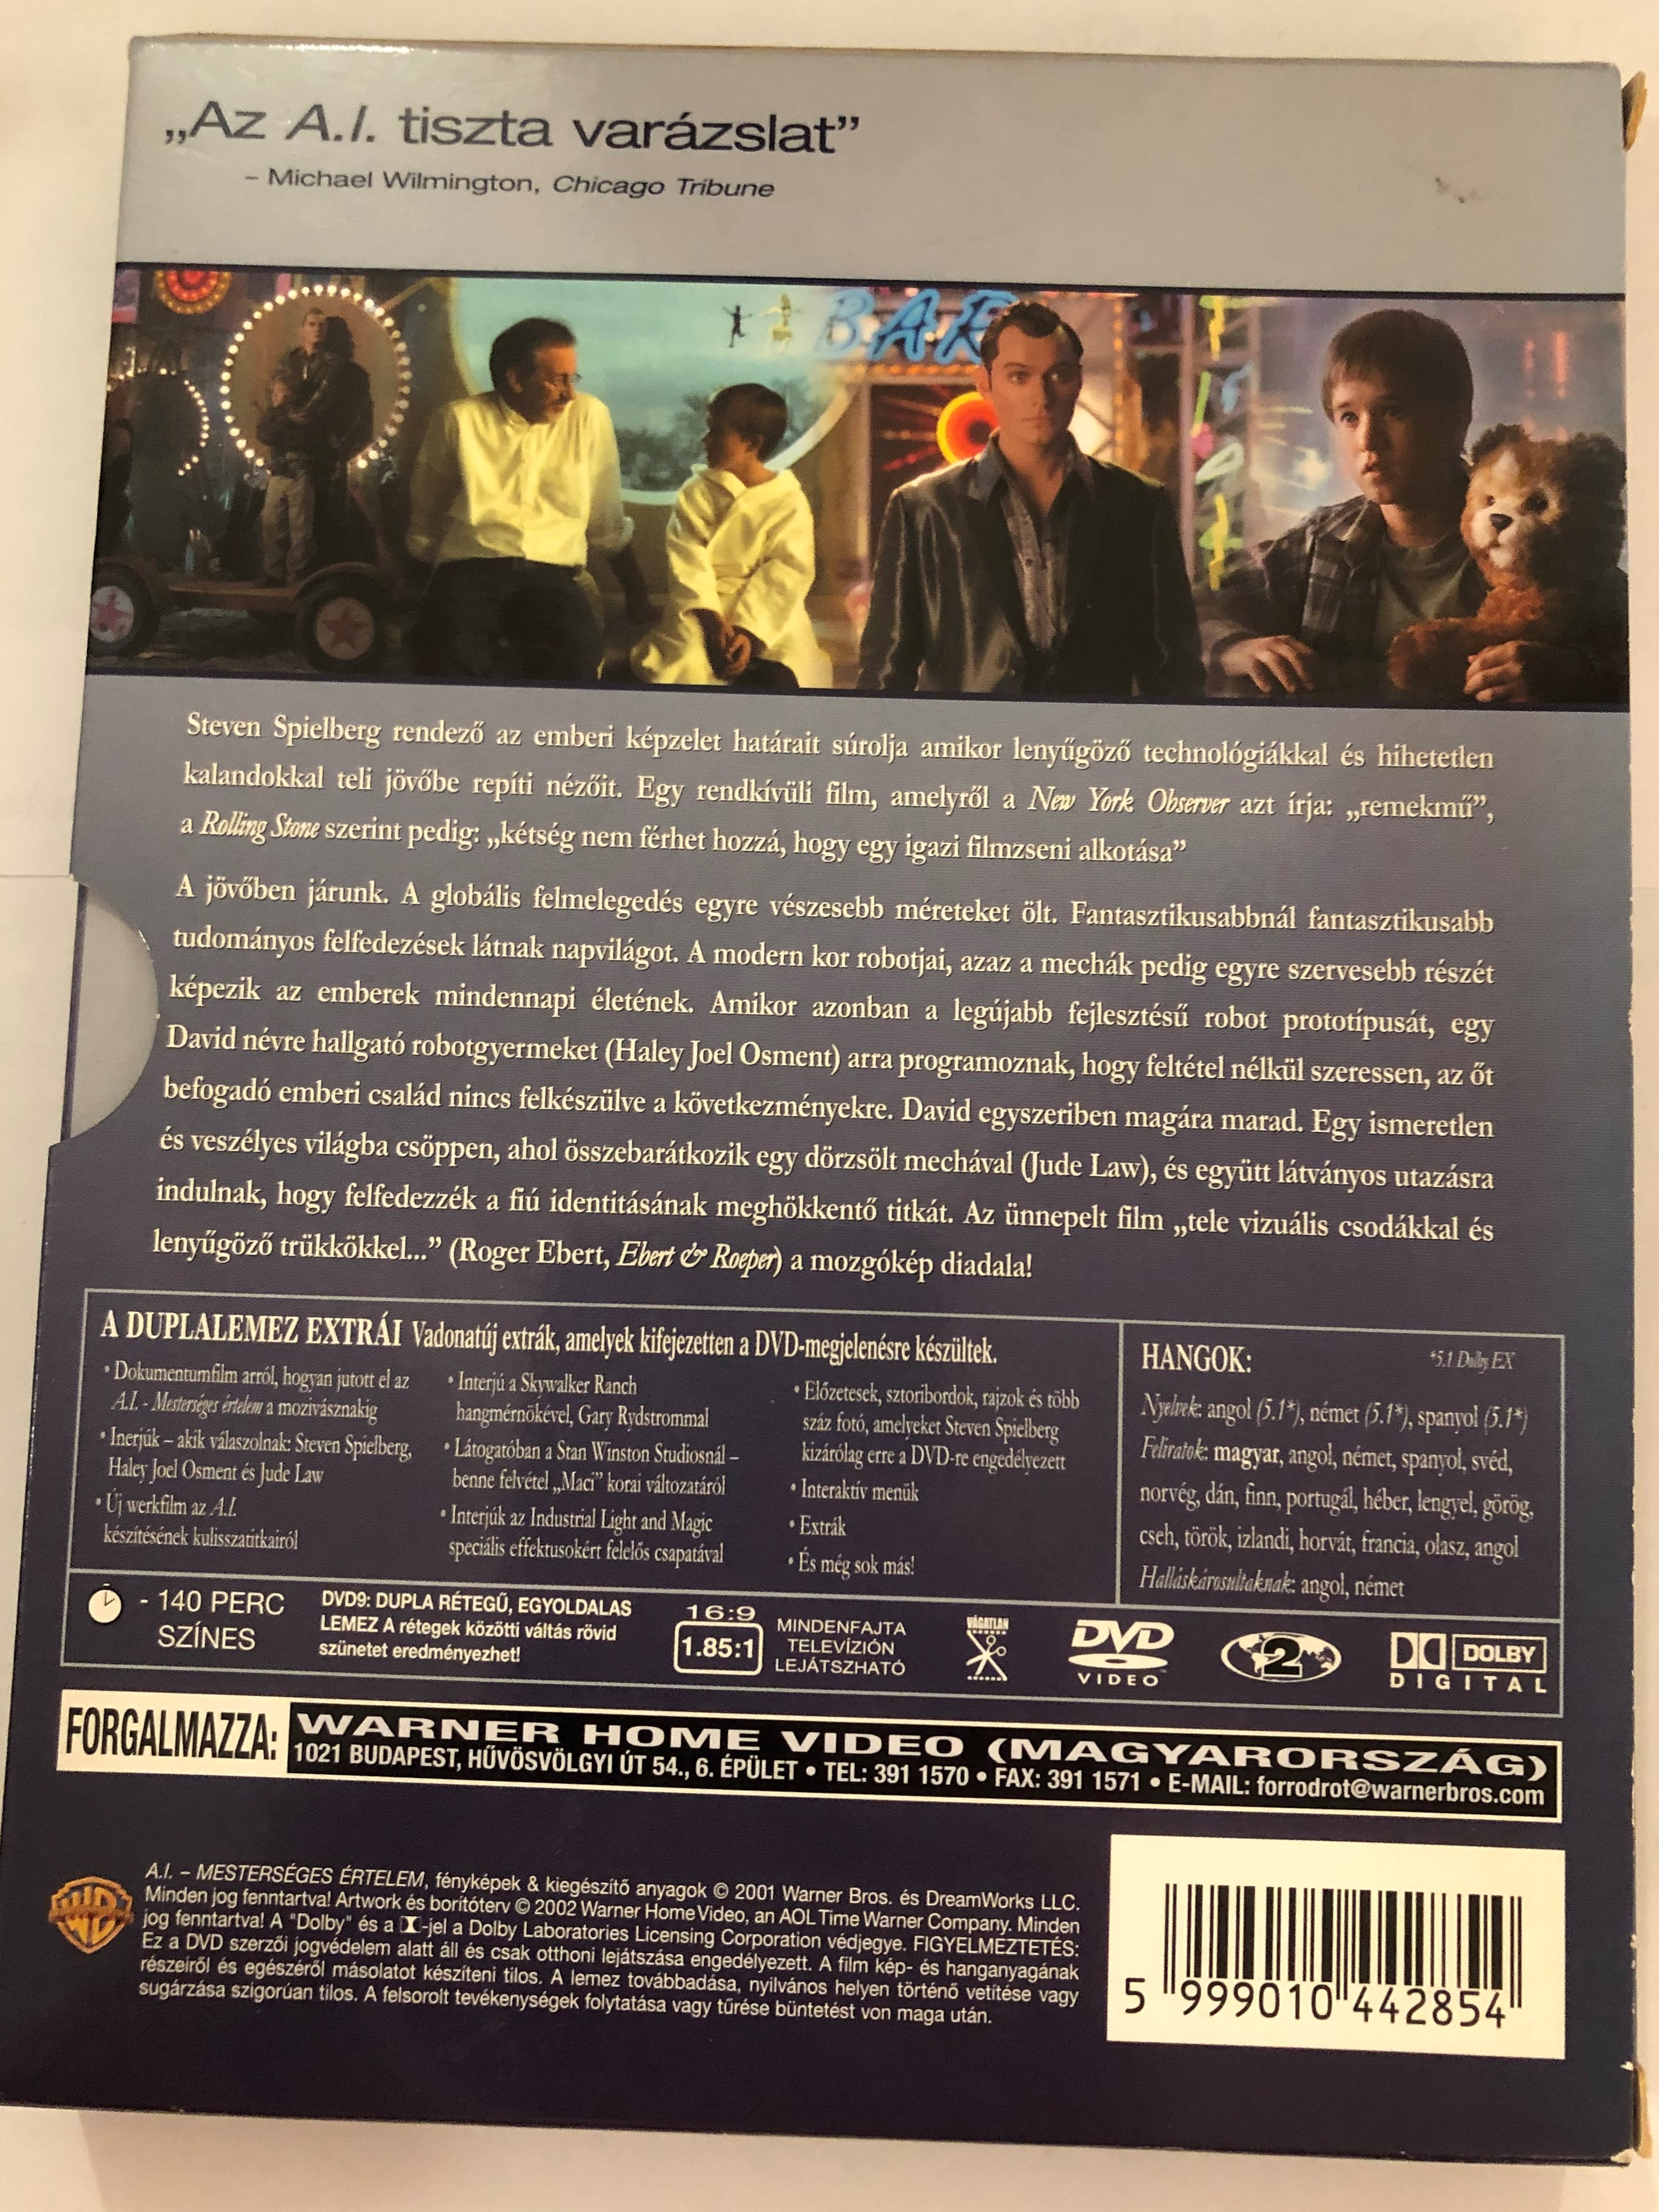 a.i.-artificial-intelligence-dvd-2001-mesters-ges-rtelem-directed-by-steven-spielberg-2.jpg